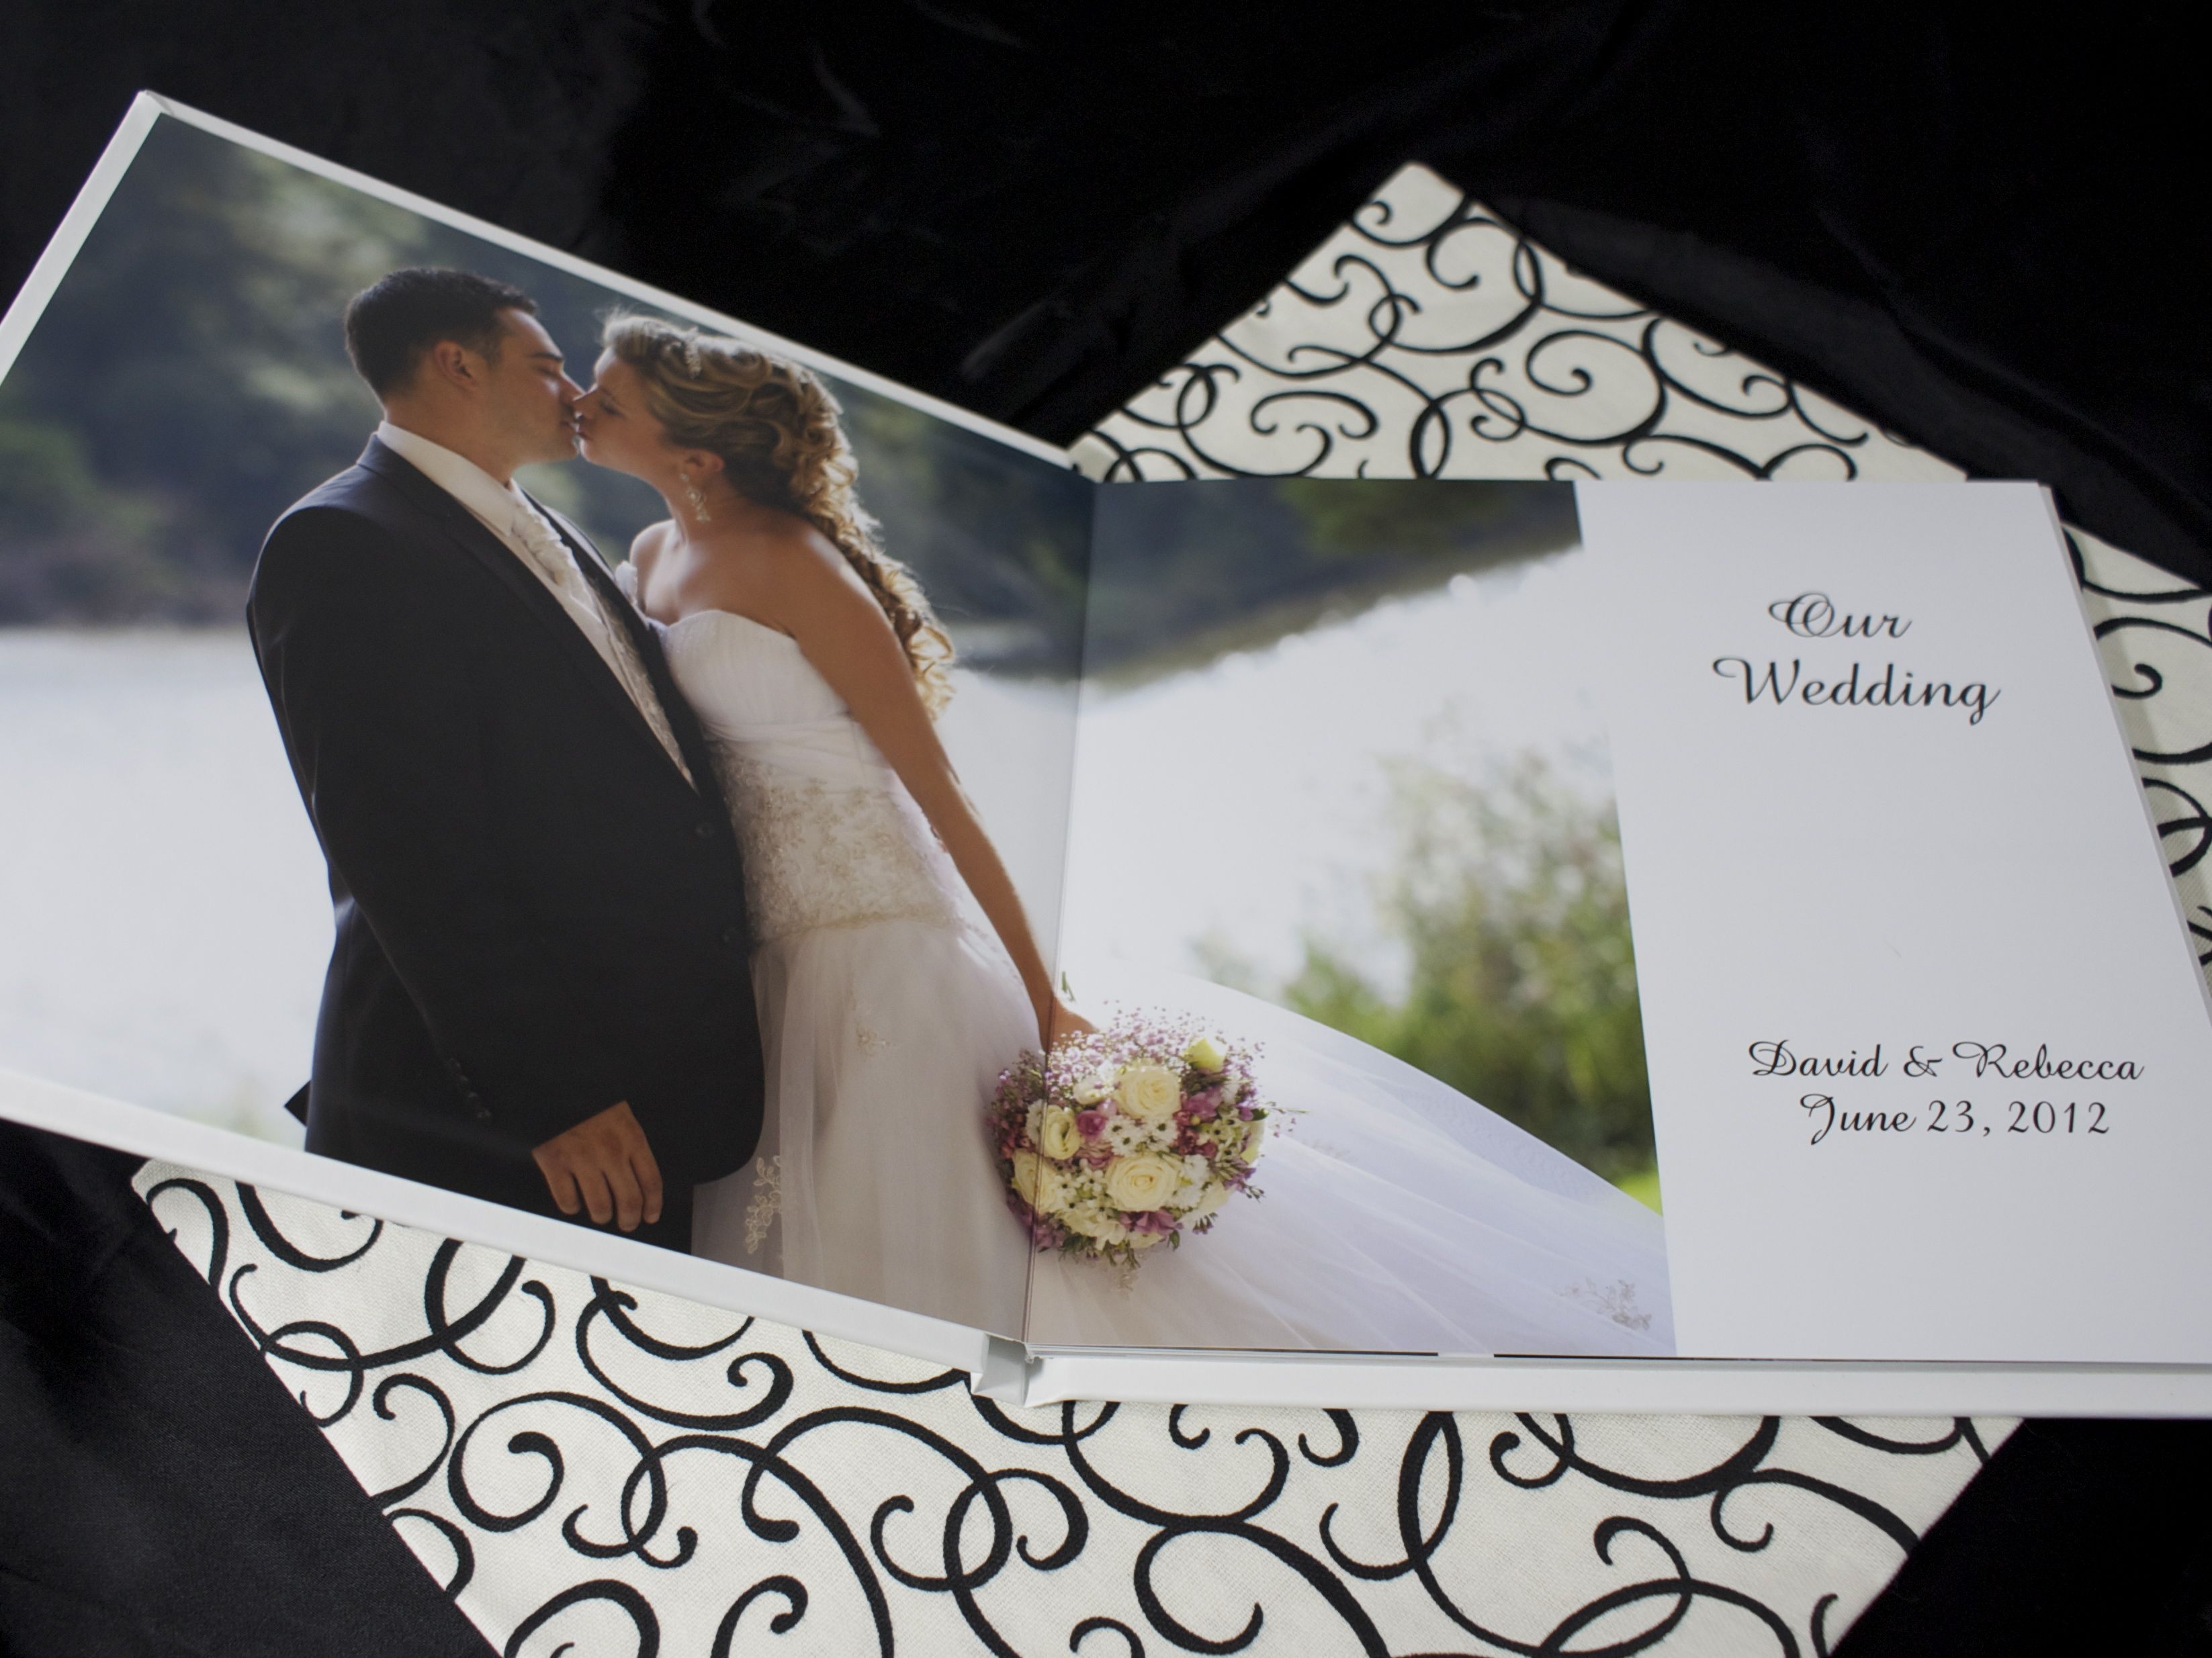 Diypure photo mount wedding album lays perfectly flat and is